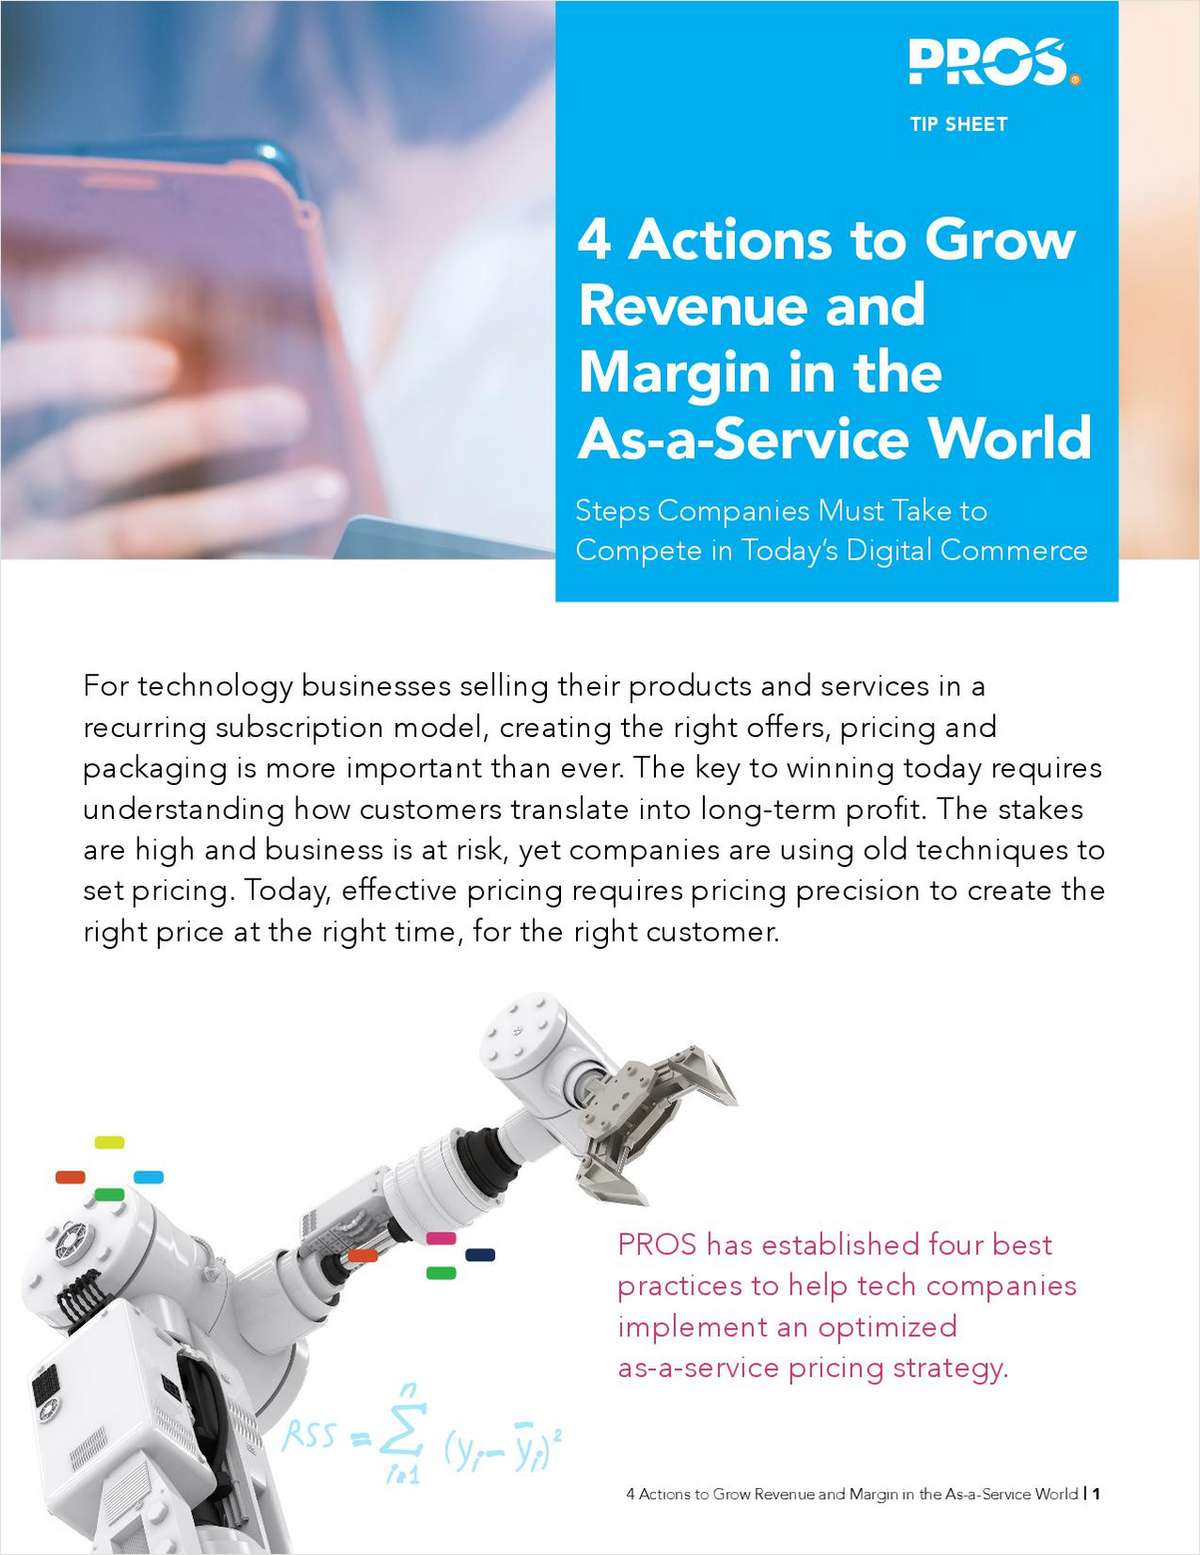 4 Actions to Grow Revenue and Margin in the As-a-Service World